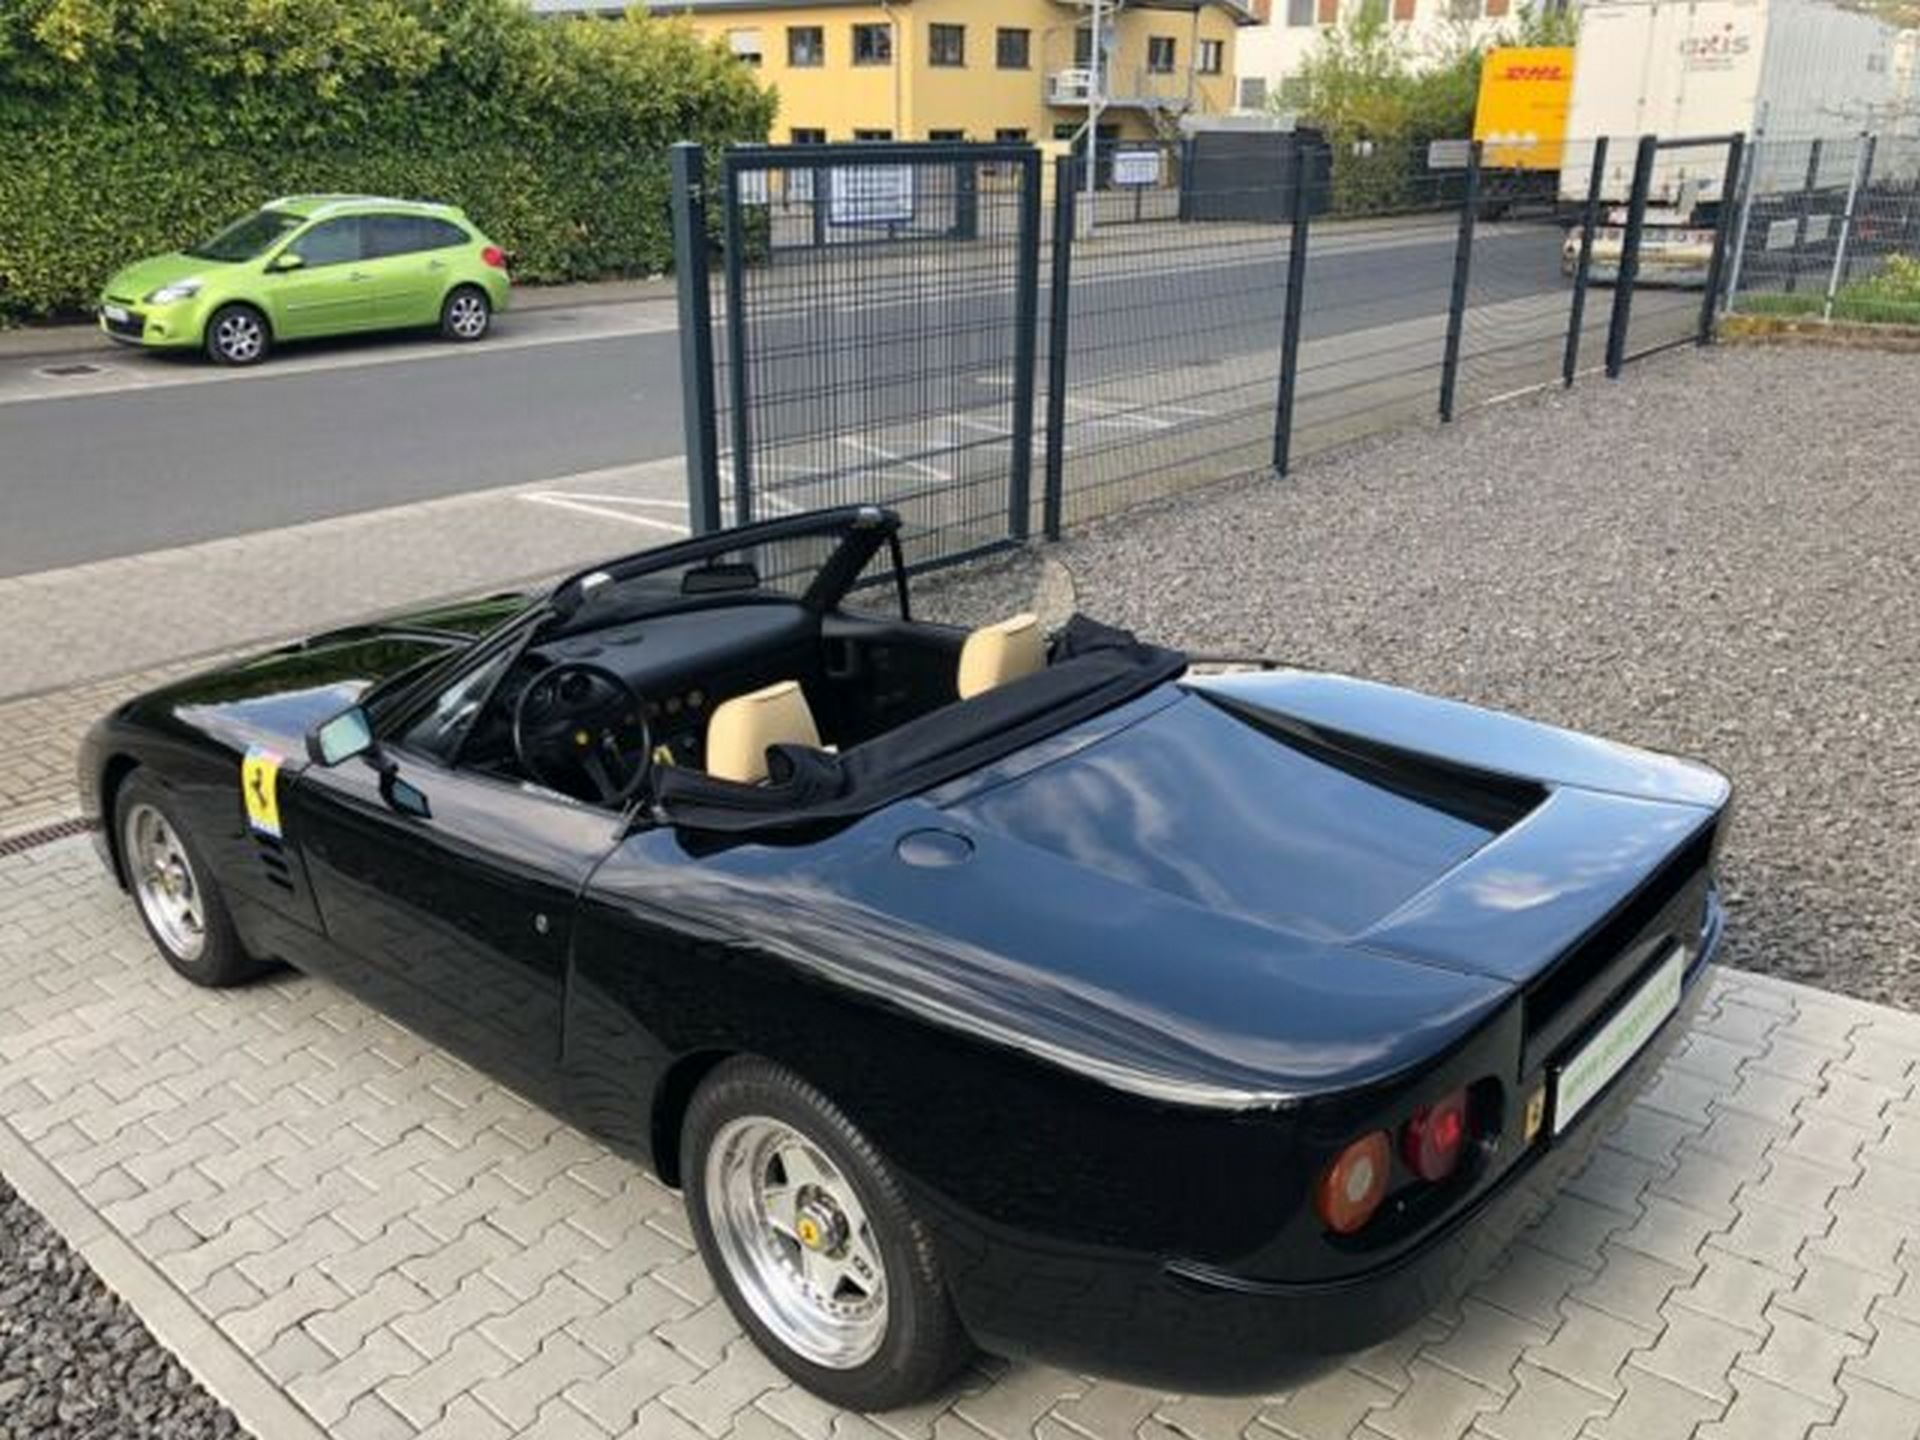 Ferrari-365-GT-NART-for-sale-7